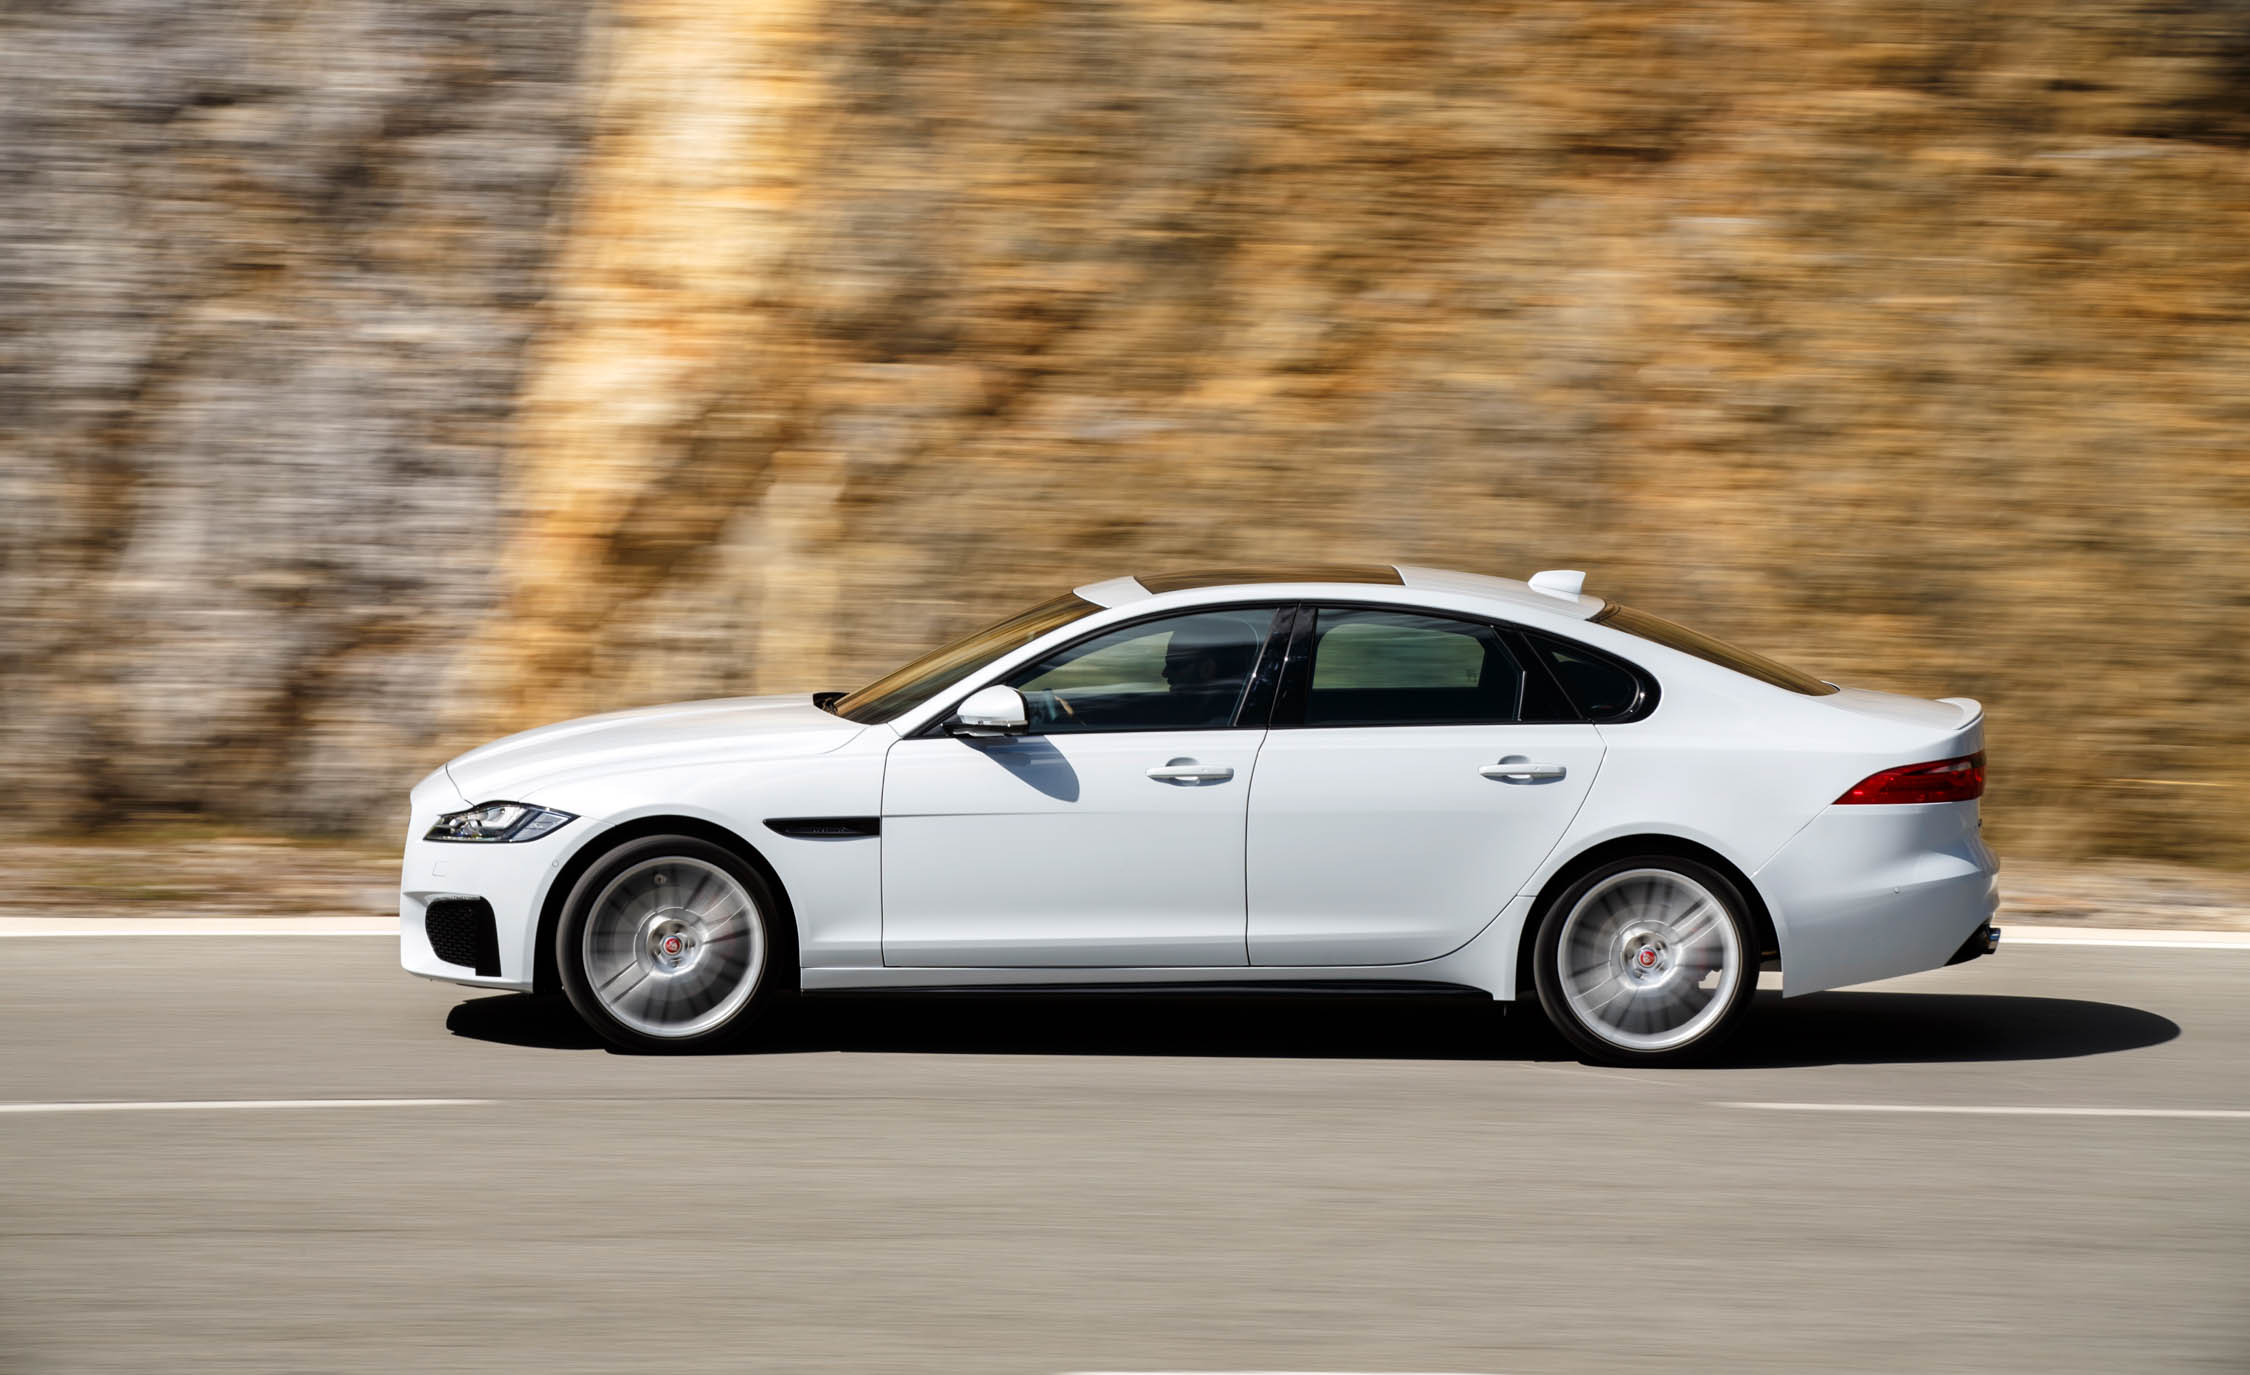 2018 Jaguar XF White Test Drive Side View (View 3 of 3)